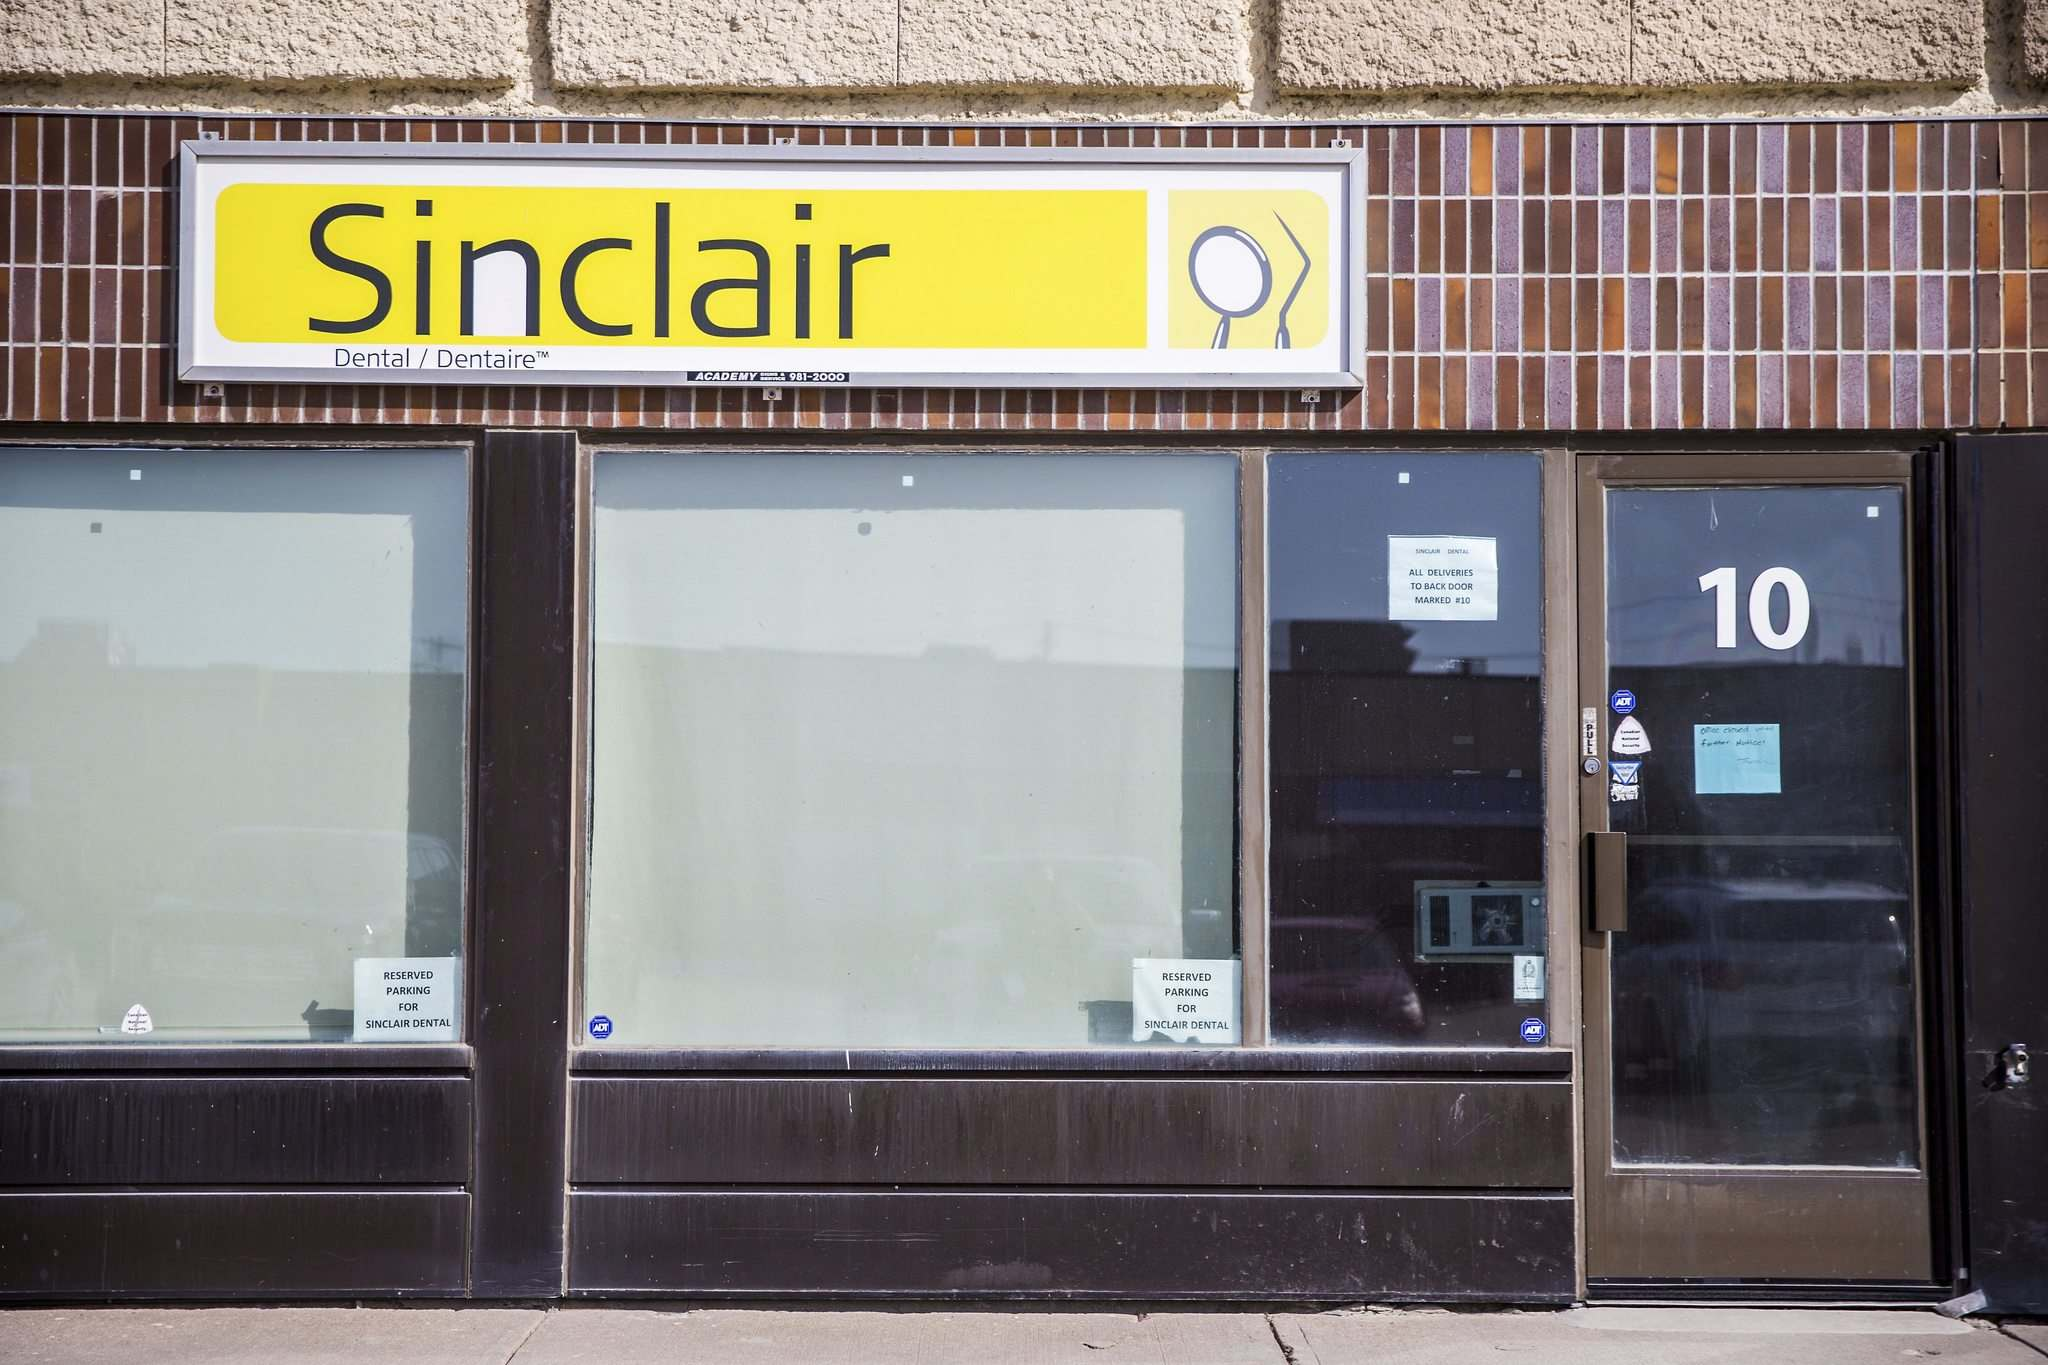 The Free Press has confirmed that Margaret Sader, who worked at Sinclair Dental in Winnipeg, was Manitoba's first COVID-19 fatality. (Mikaela MacKenzie / Winnipeg Free Press)